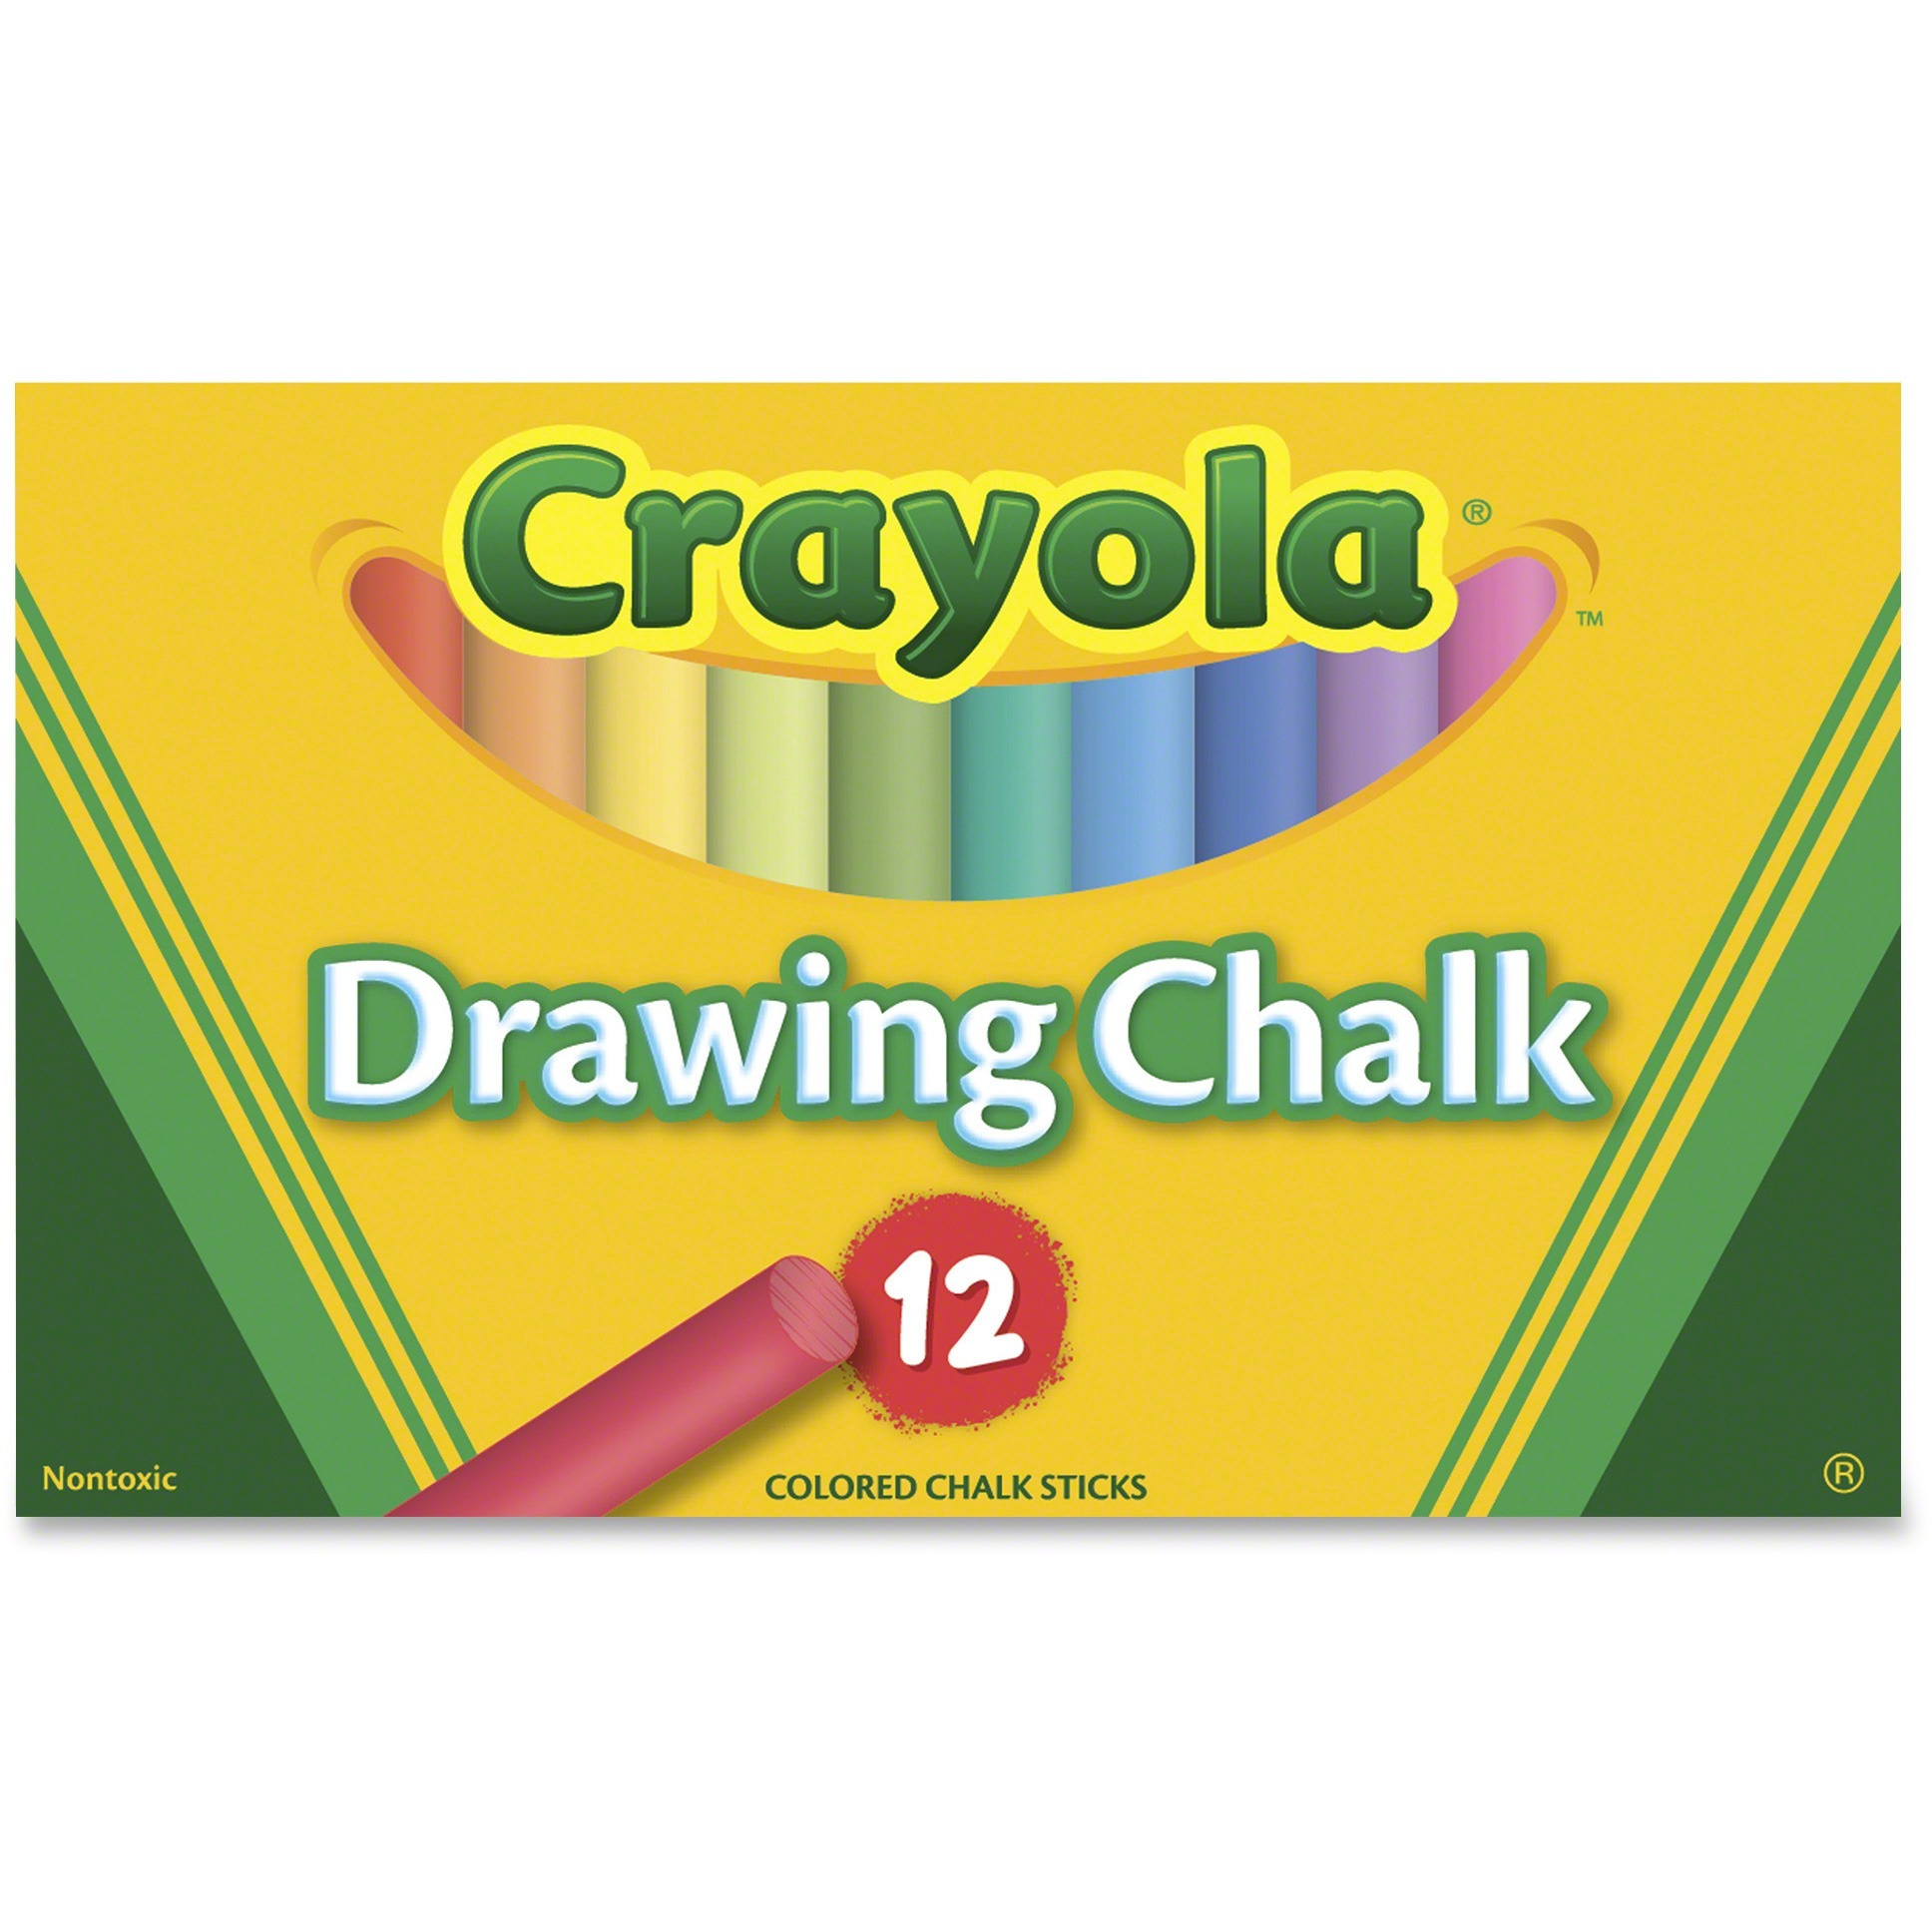 Includes Fun Magnetic Chalk Holder w//Kid-Friendly Grip Truly Dust Free Chalk for Art Decorating Whiteboard Blackboard Easy to Clean 12colored WEIMY 12-Count Colored Dustless Chalks Non-Toxic